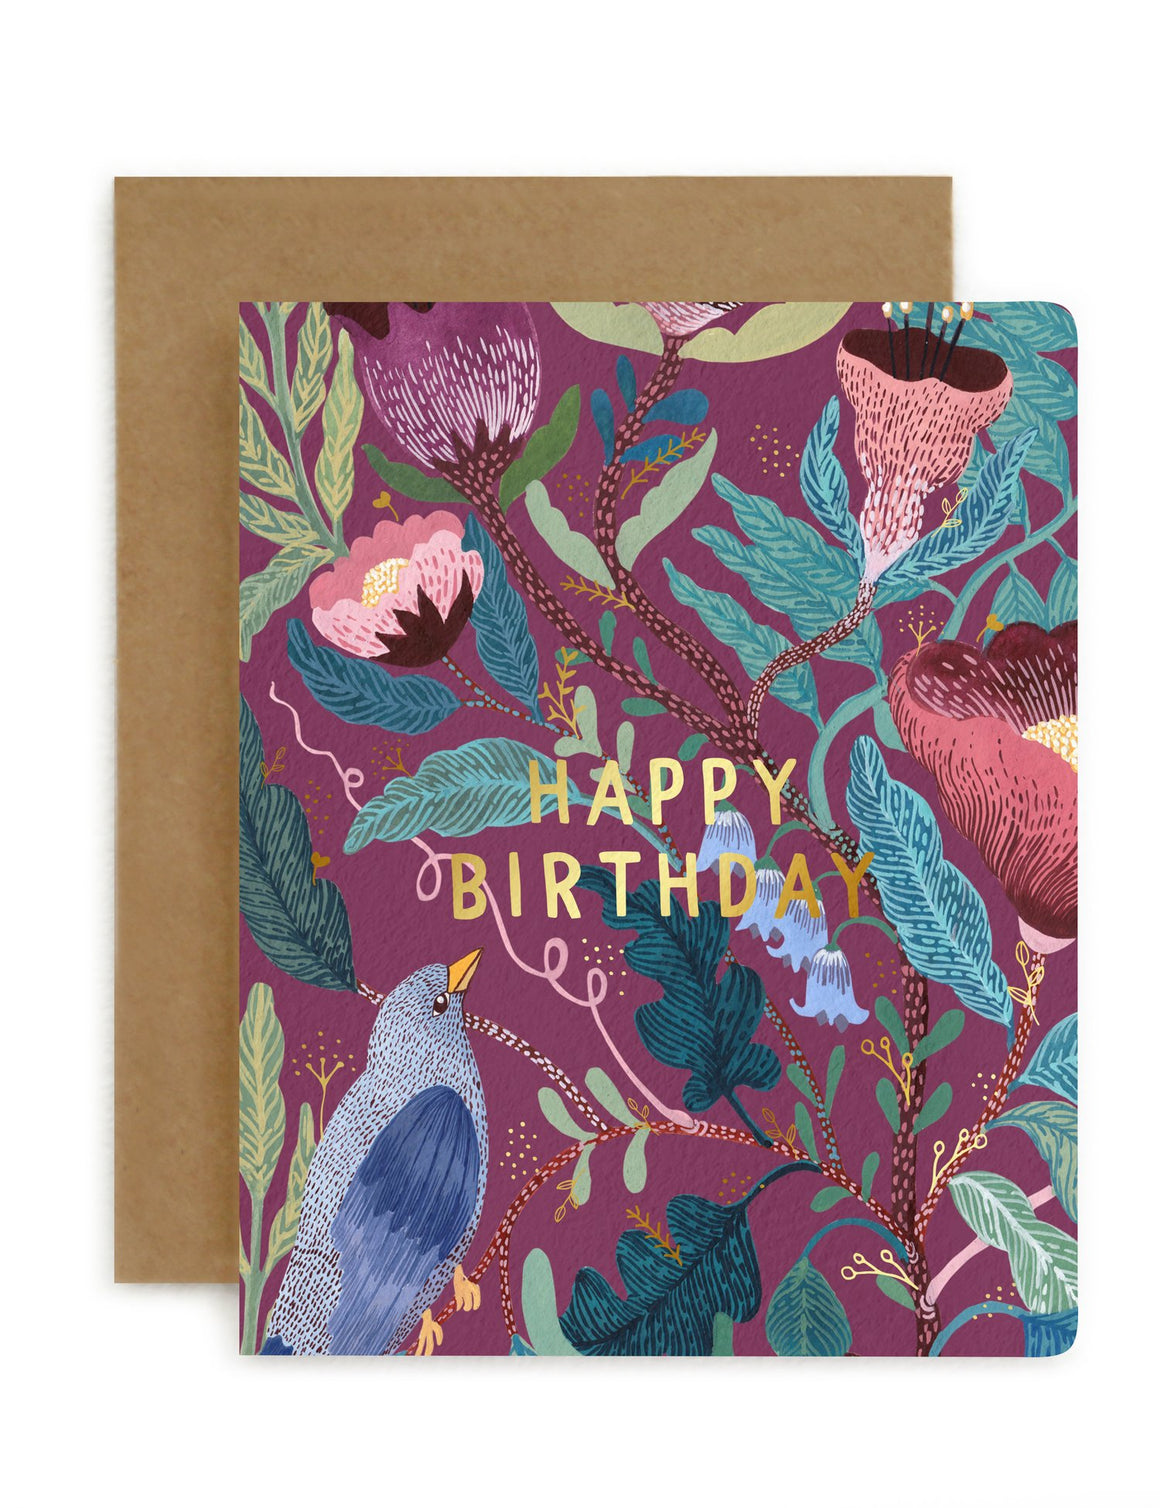 Blomstra 'Happy Birthday' Card